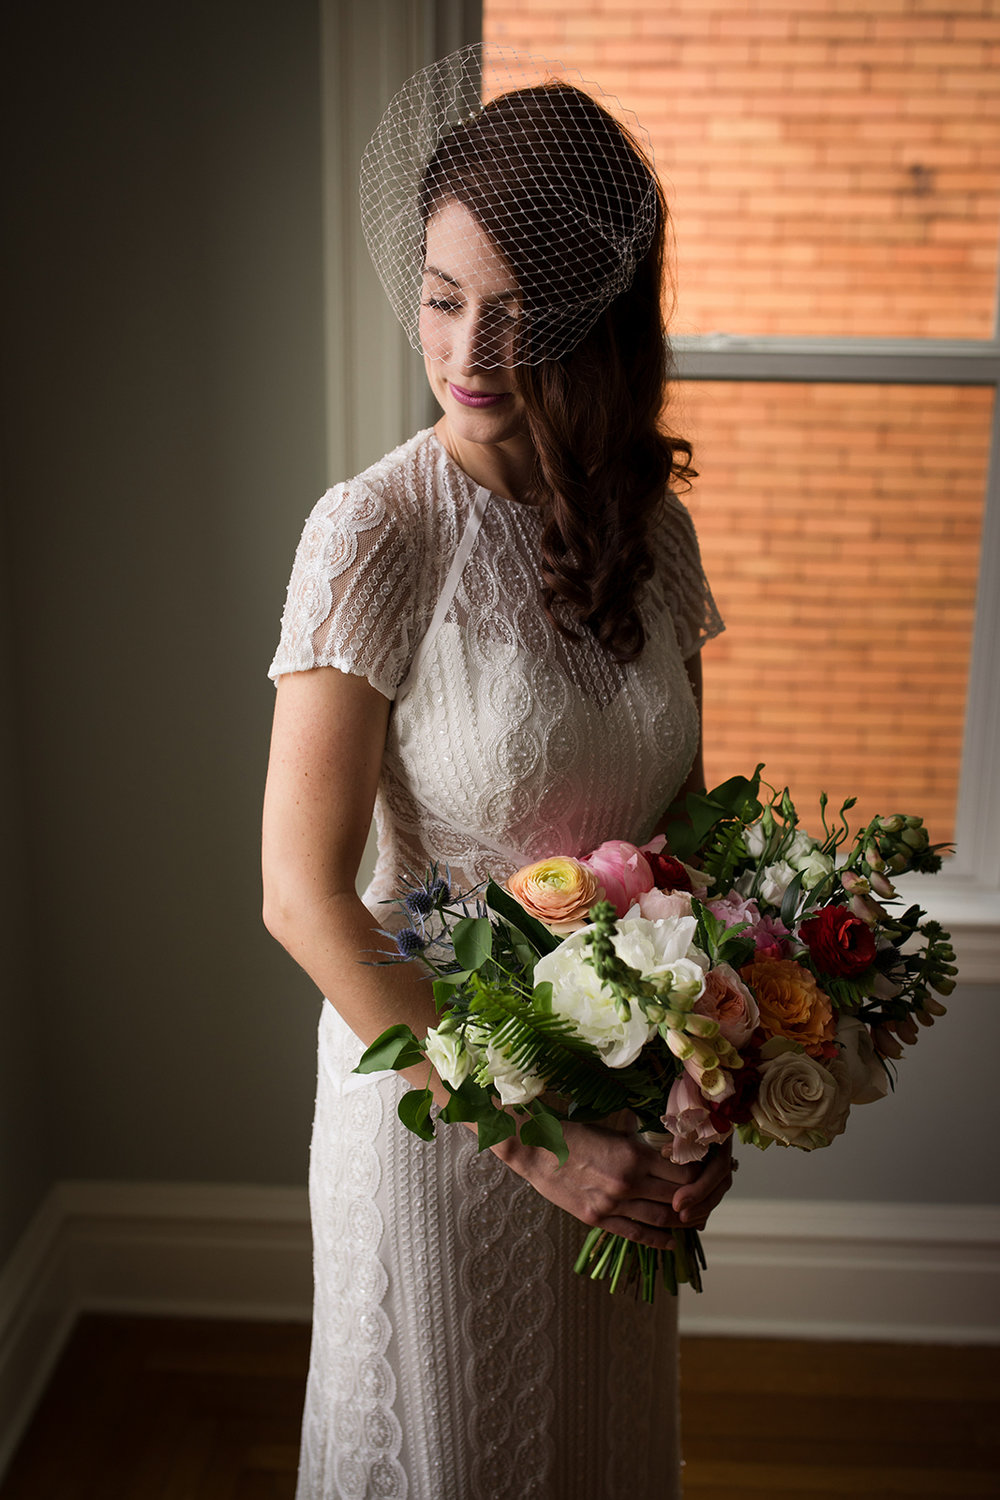 Bride in vintage style wedding gown and birdcage veil holding her wedding bouquet for Pittsburgh wedding at Ace Hotel. See more details at exhale-events.com!